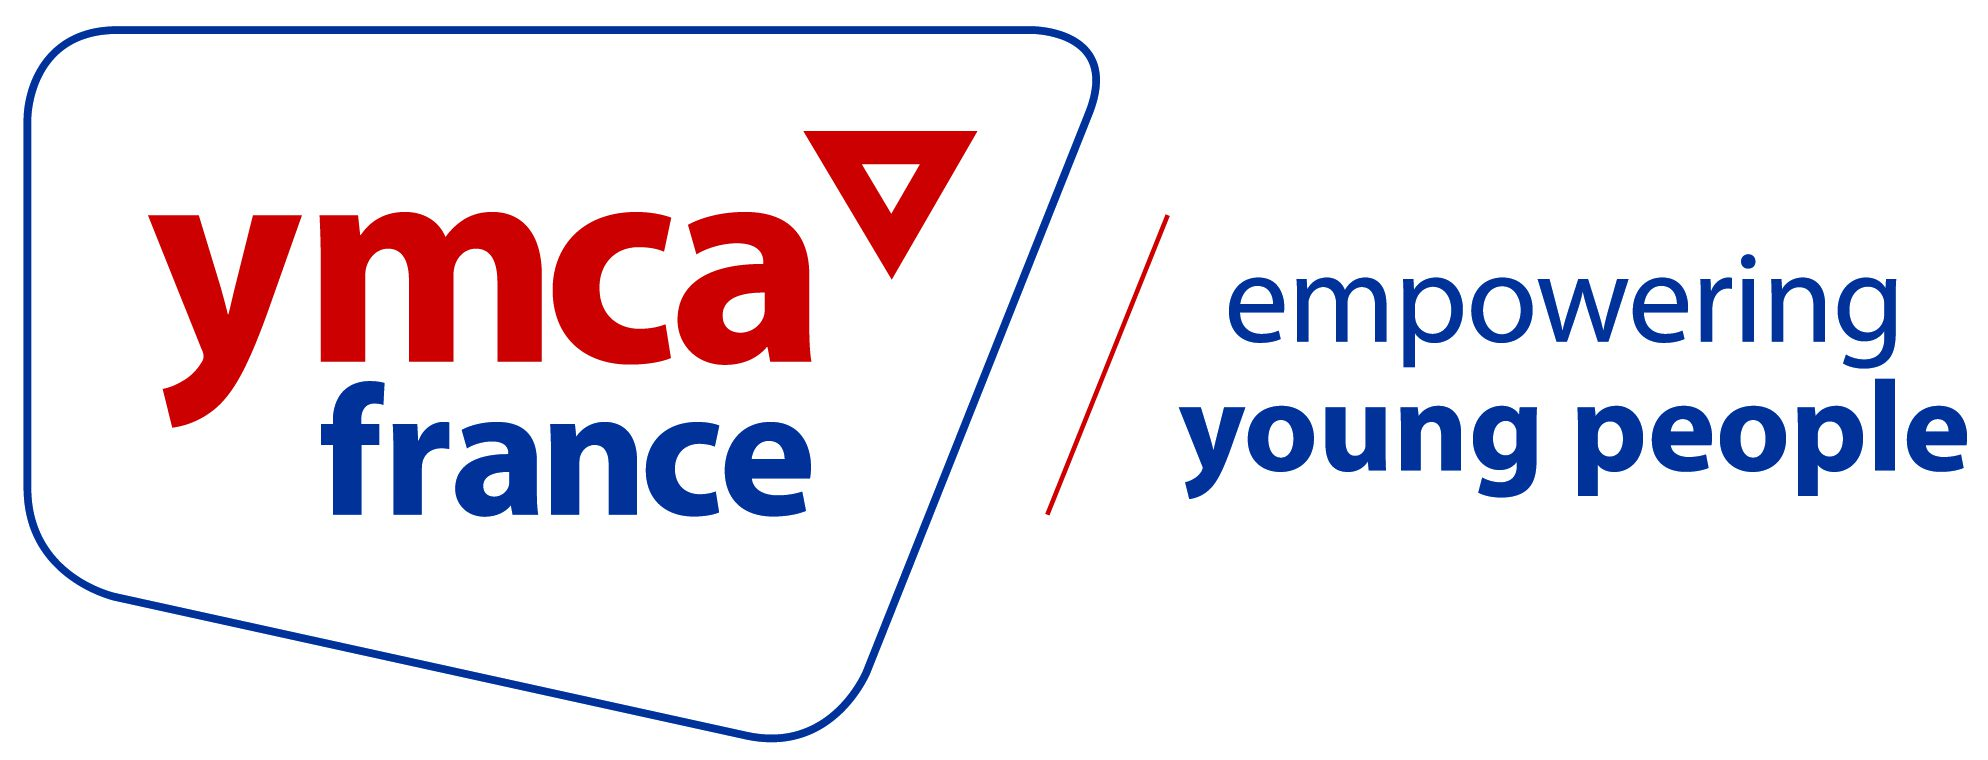 logo-ymca-signature.jpg